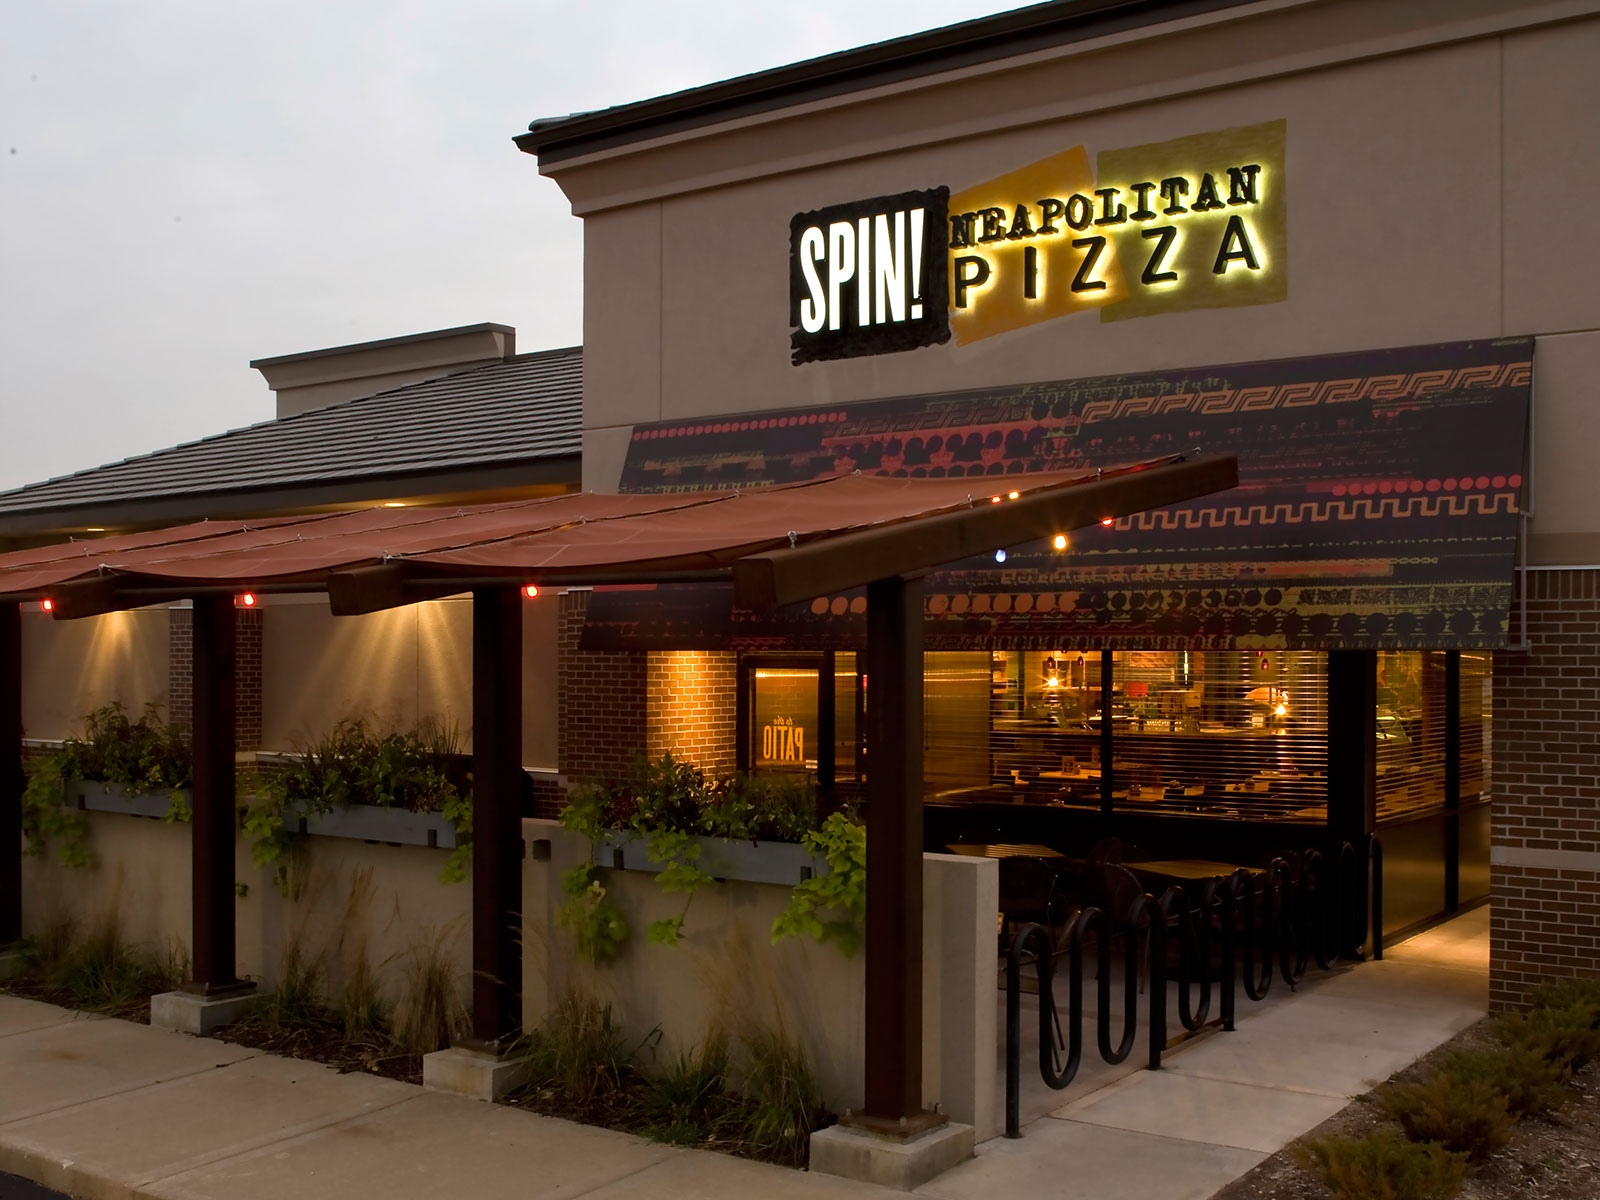 Spin pizza evolving a brand from start up to chain